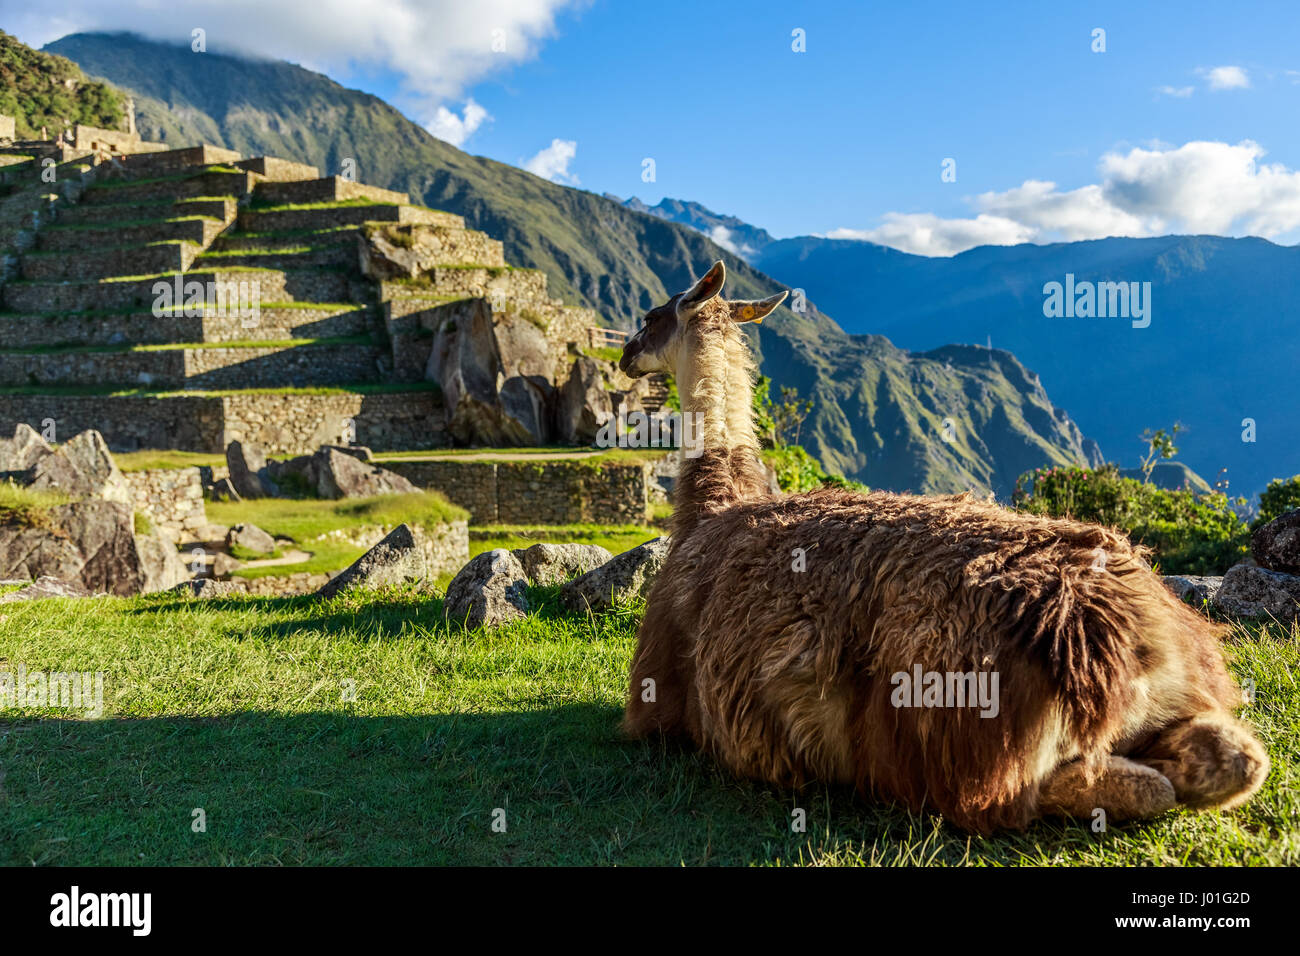 Lama sitting on the grass and looking at terrace of Machu Picchu - Stock Image